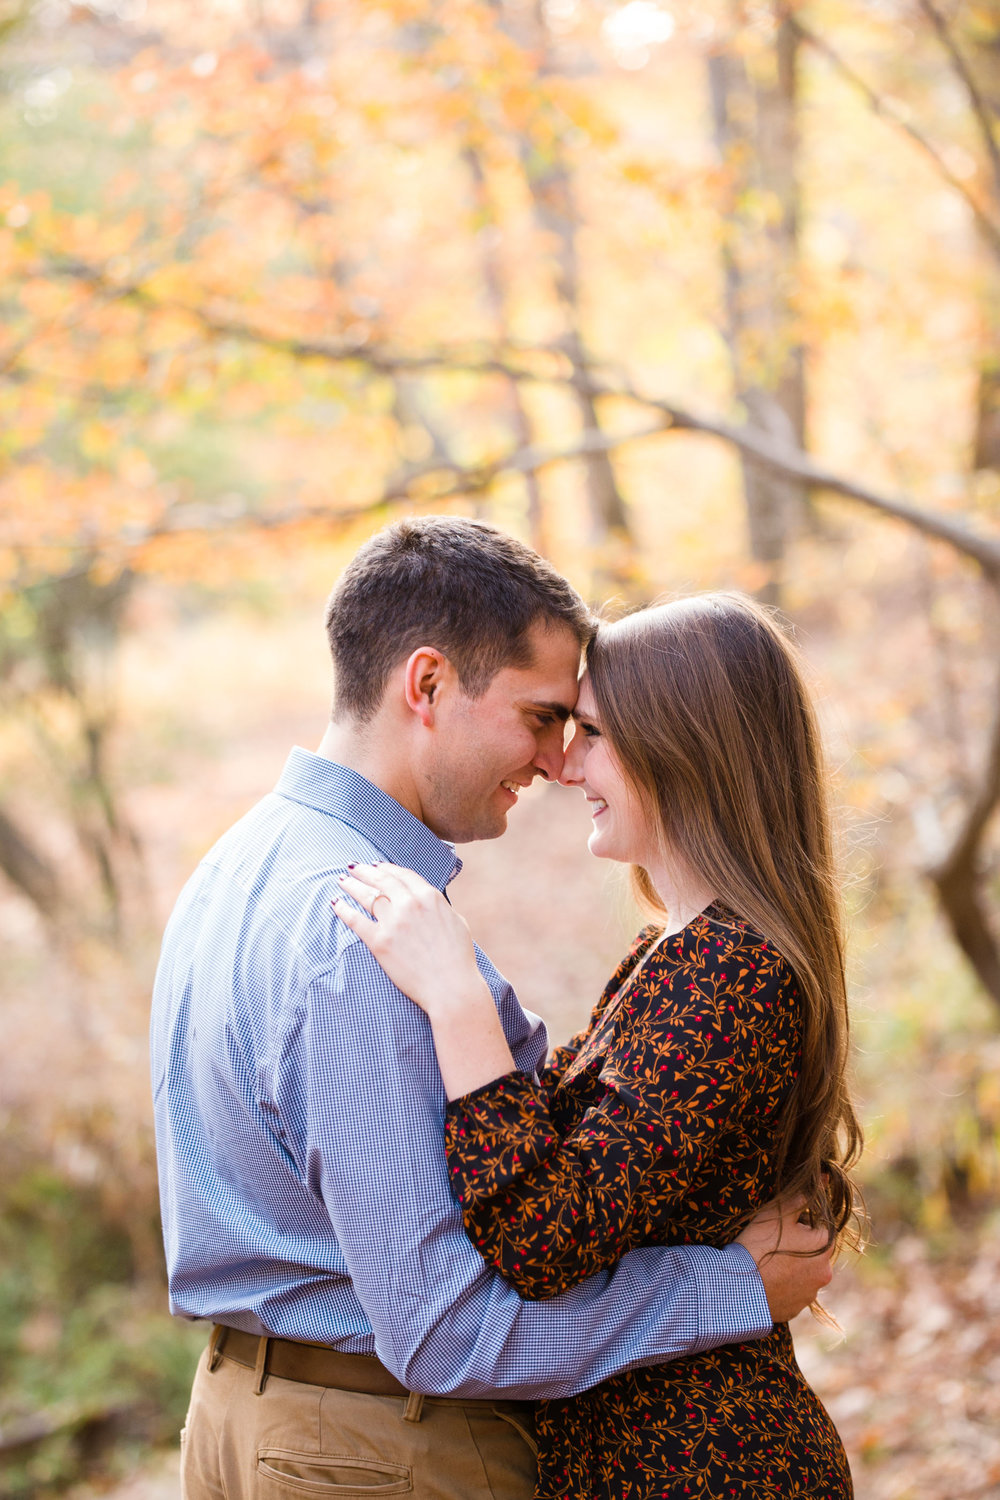 2018_11_07_michelle_francisco_engagement_eno_river-8525.jpg